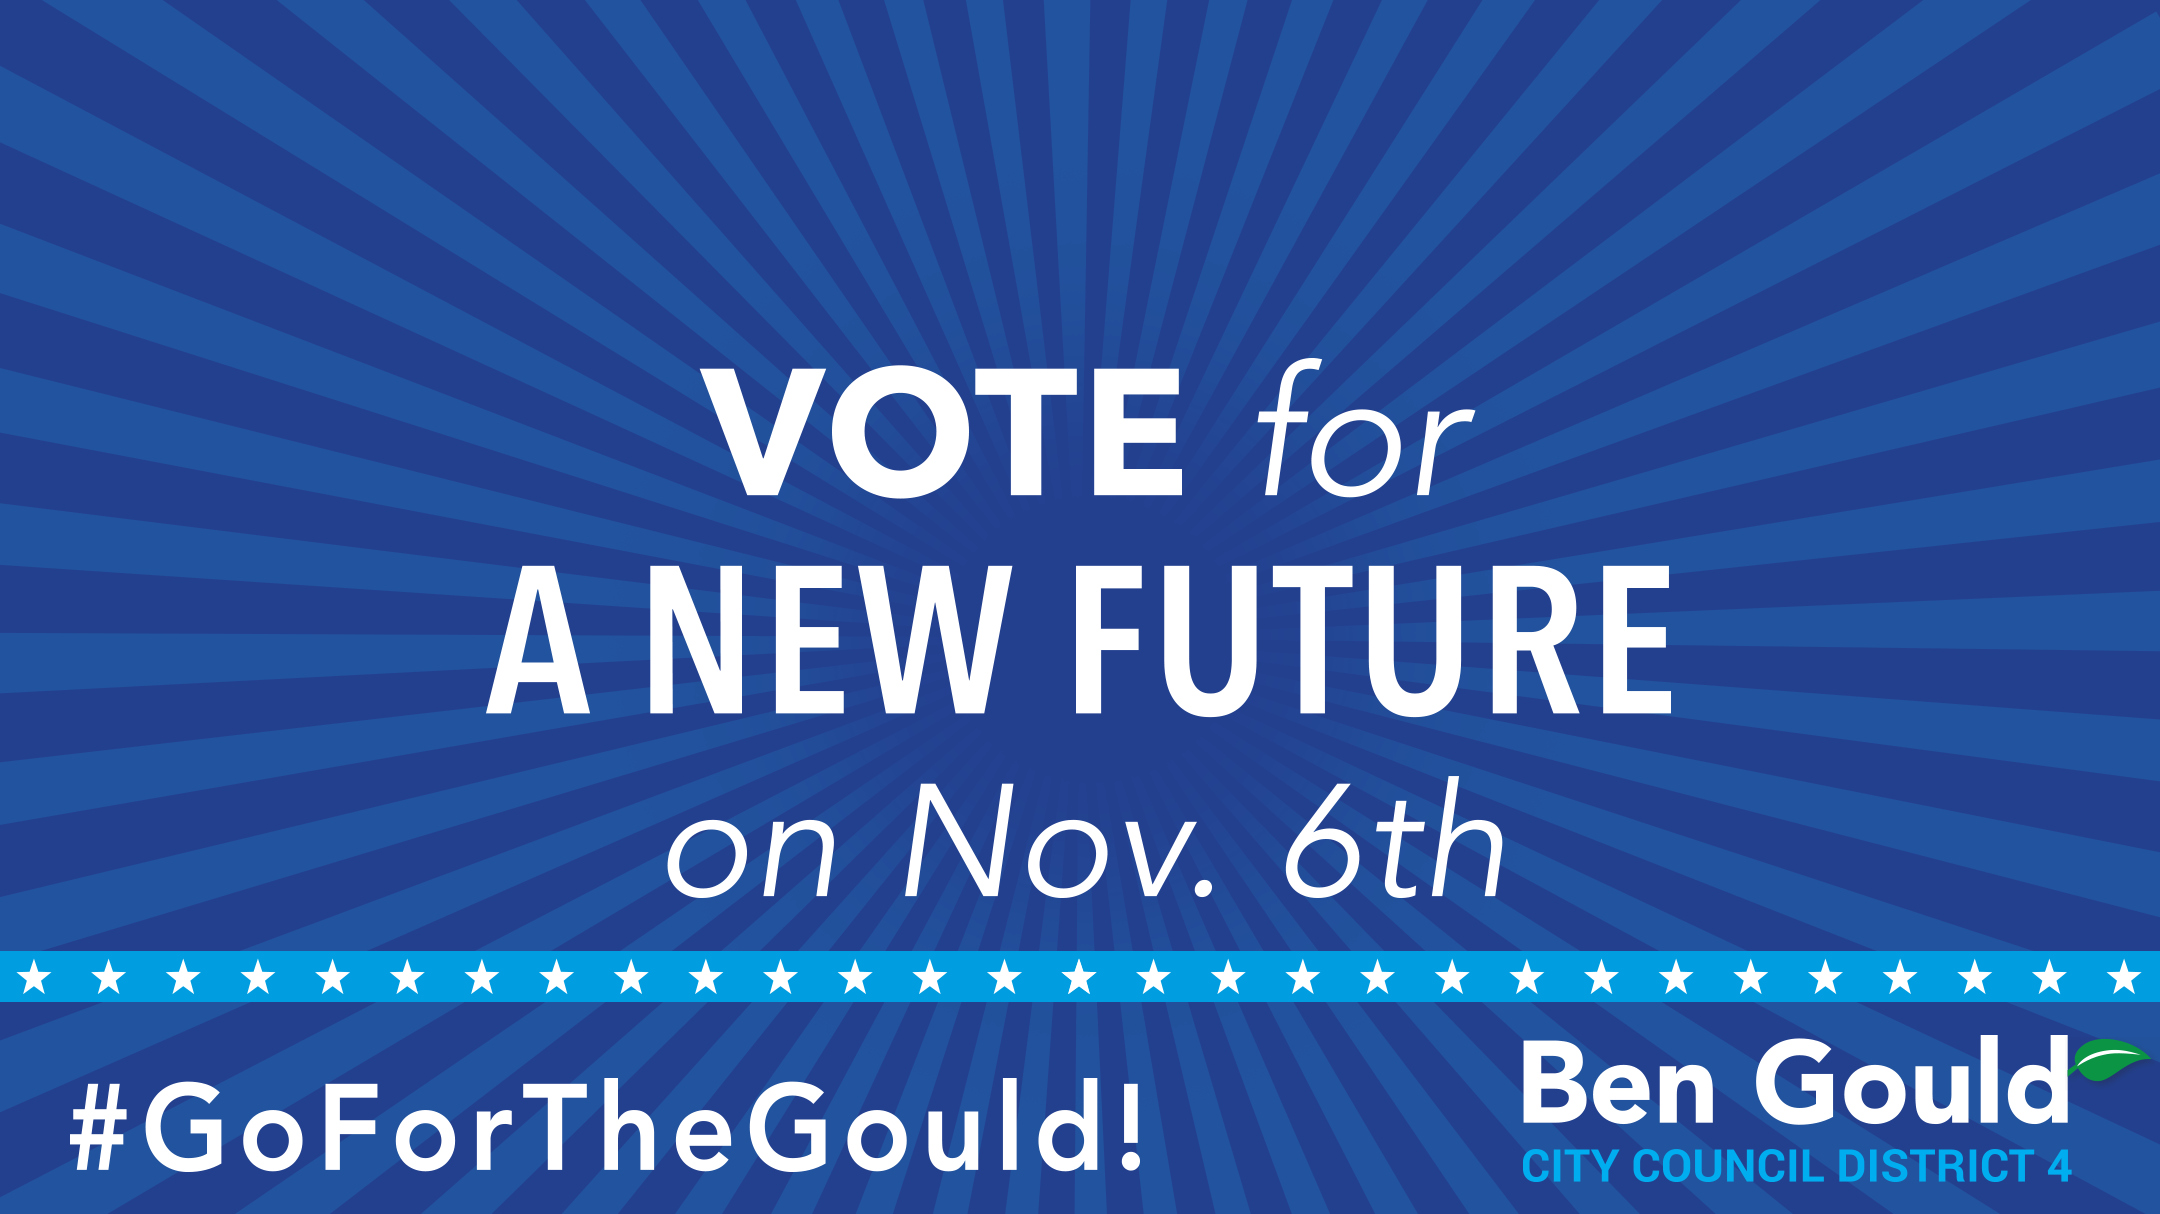 VOTE for A NEW FUTURE on Nov 6th